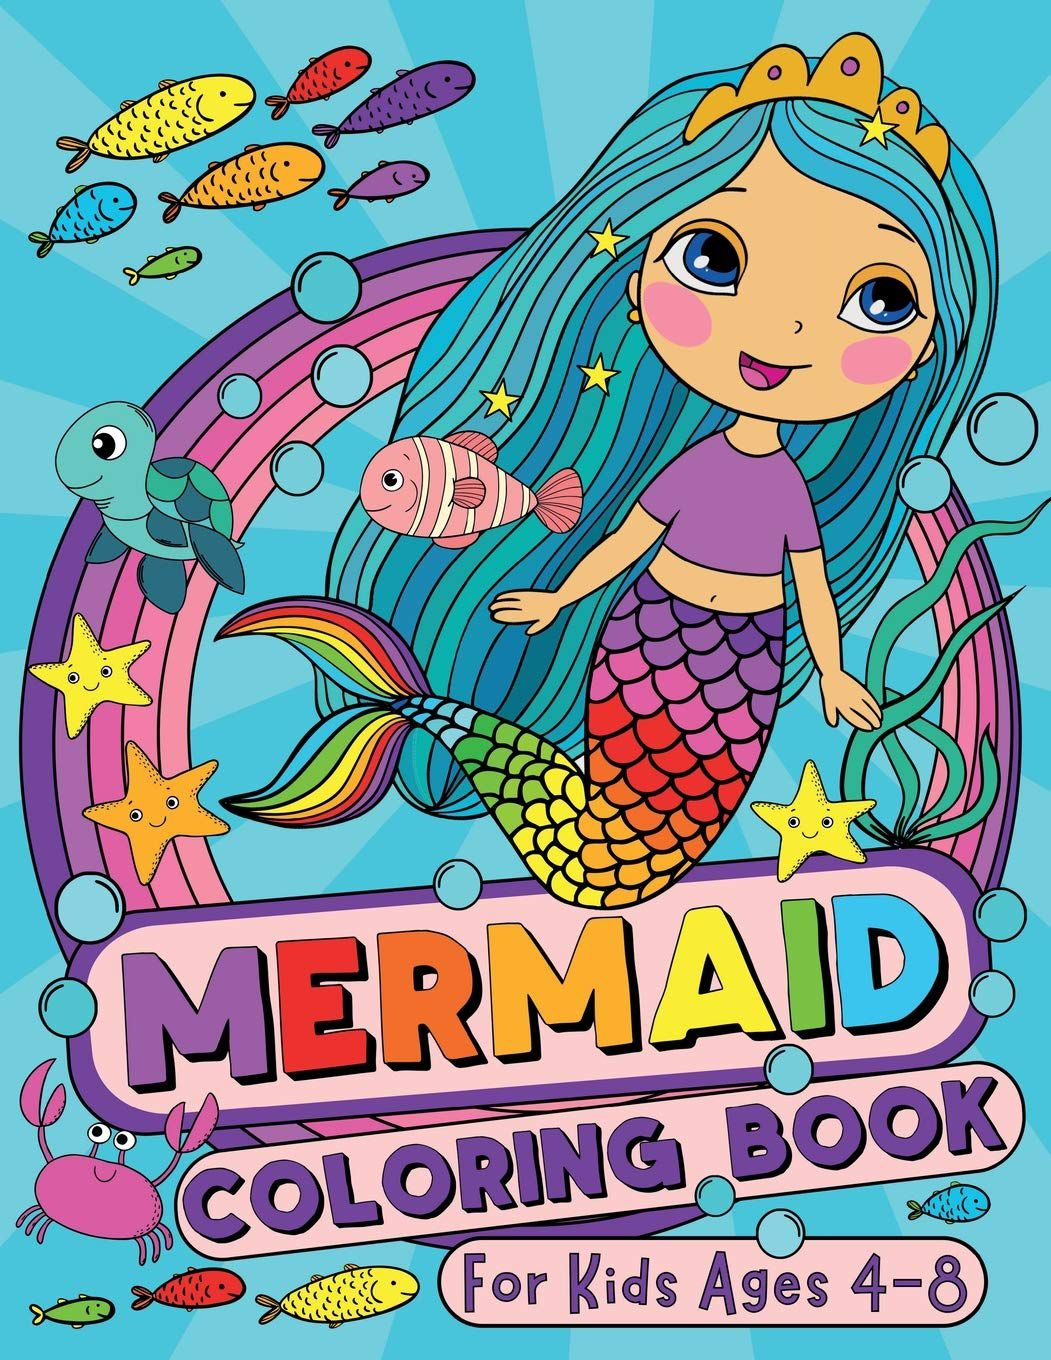 Mermaid Coloring Book by Silly Bear with a colored illustration of a mermaid with aqua hair on the cover